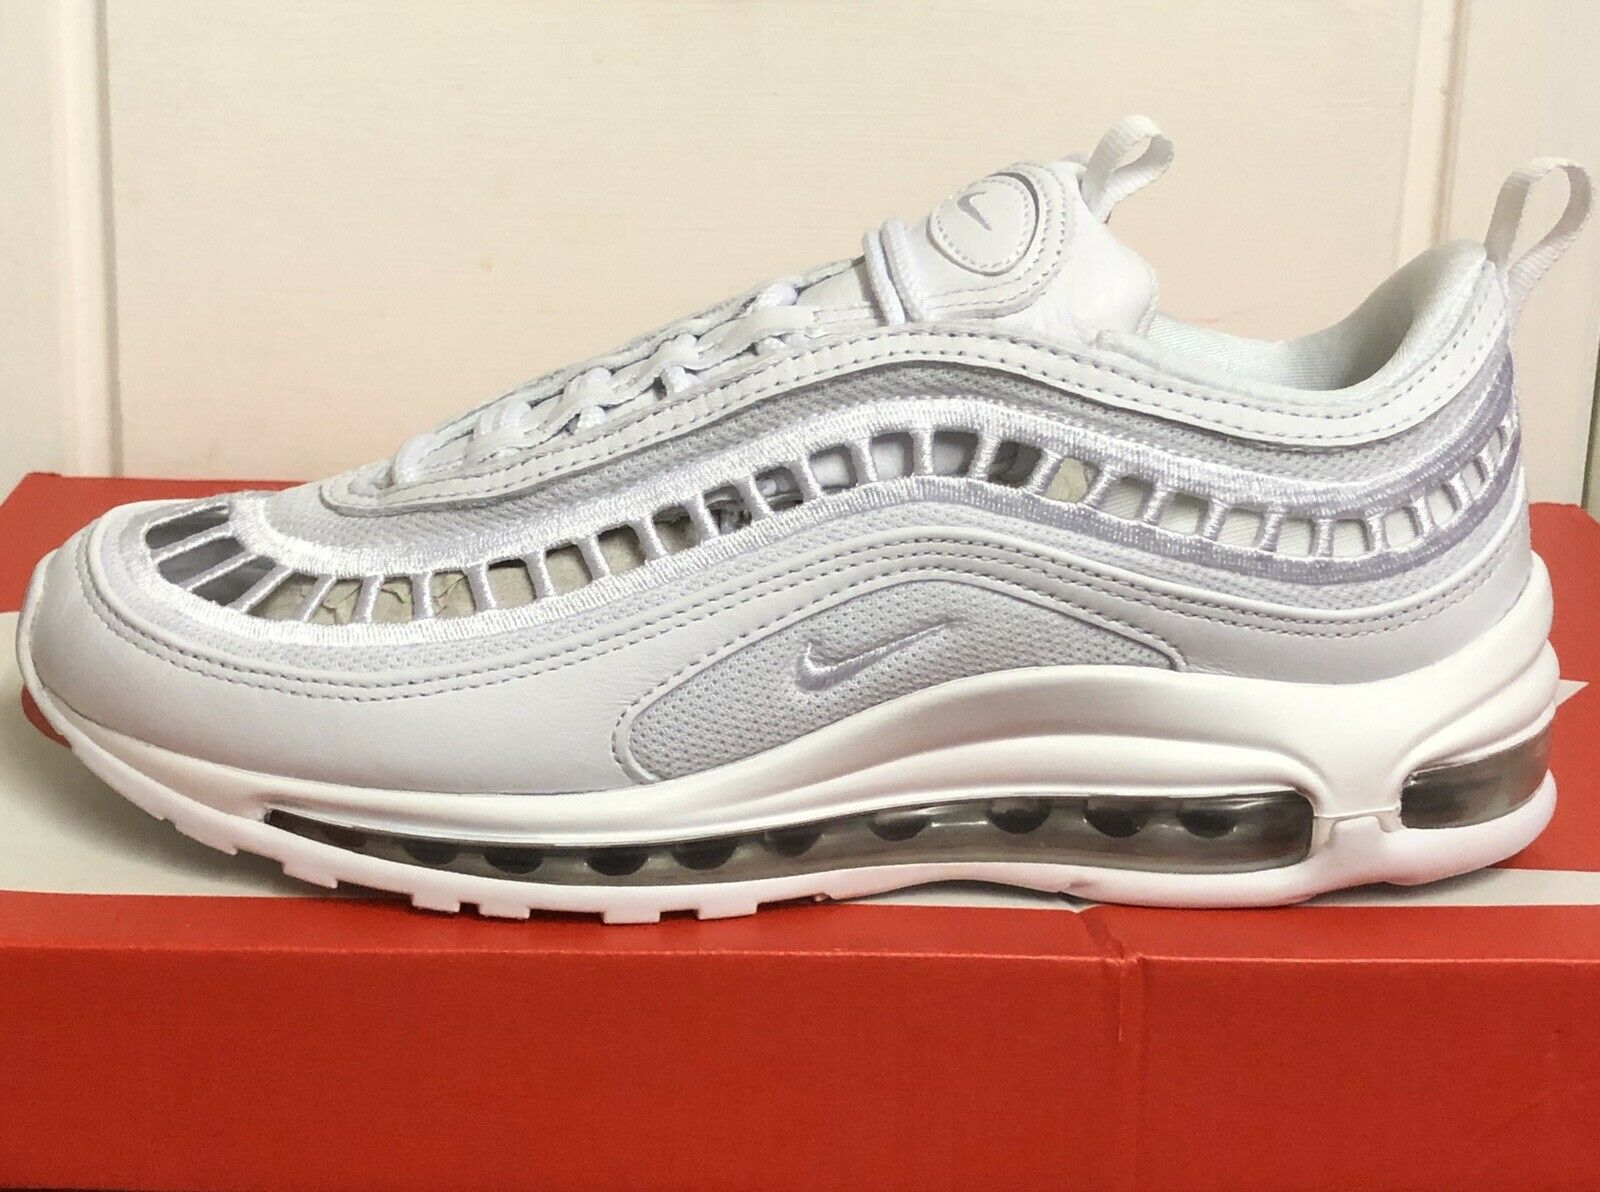 NIKE AIR MAX 97 ULTRA '17 SI TRAINERS SNEAKERS SHOES SIZE UK 3 EUR 36 US 5,5